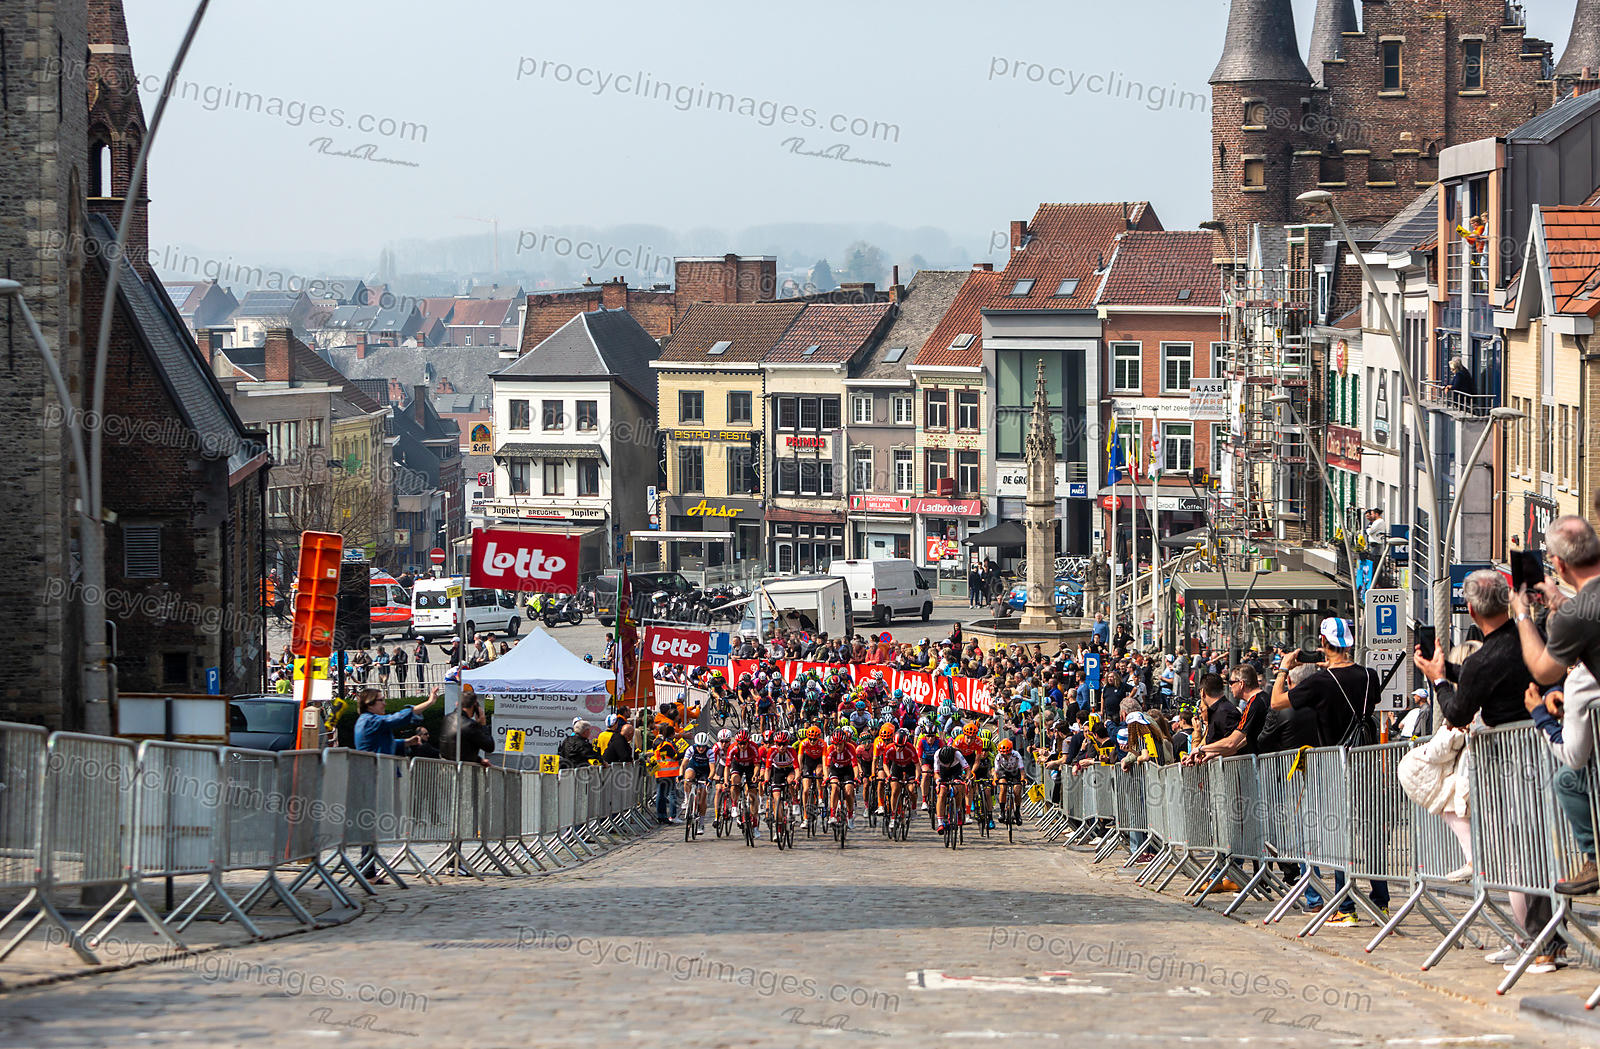 The Feminine Peloton - Tour of Flanders 2019